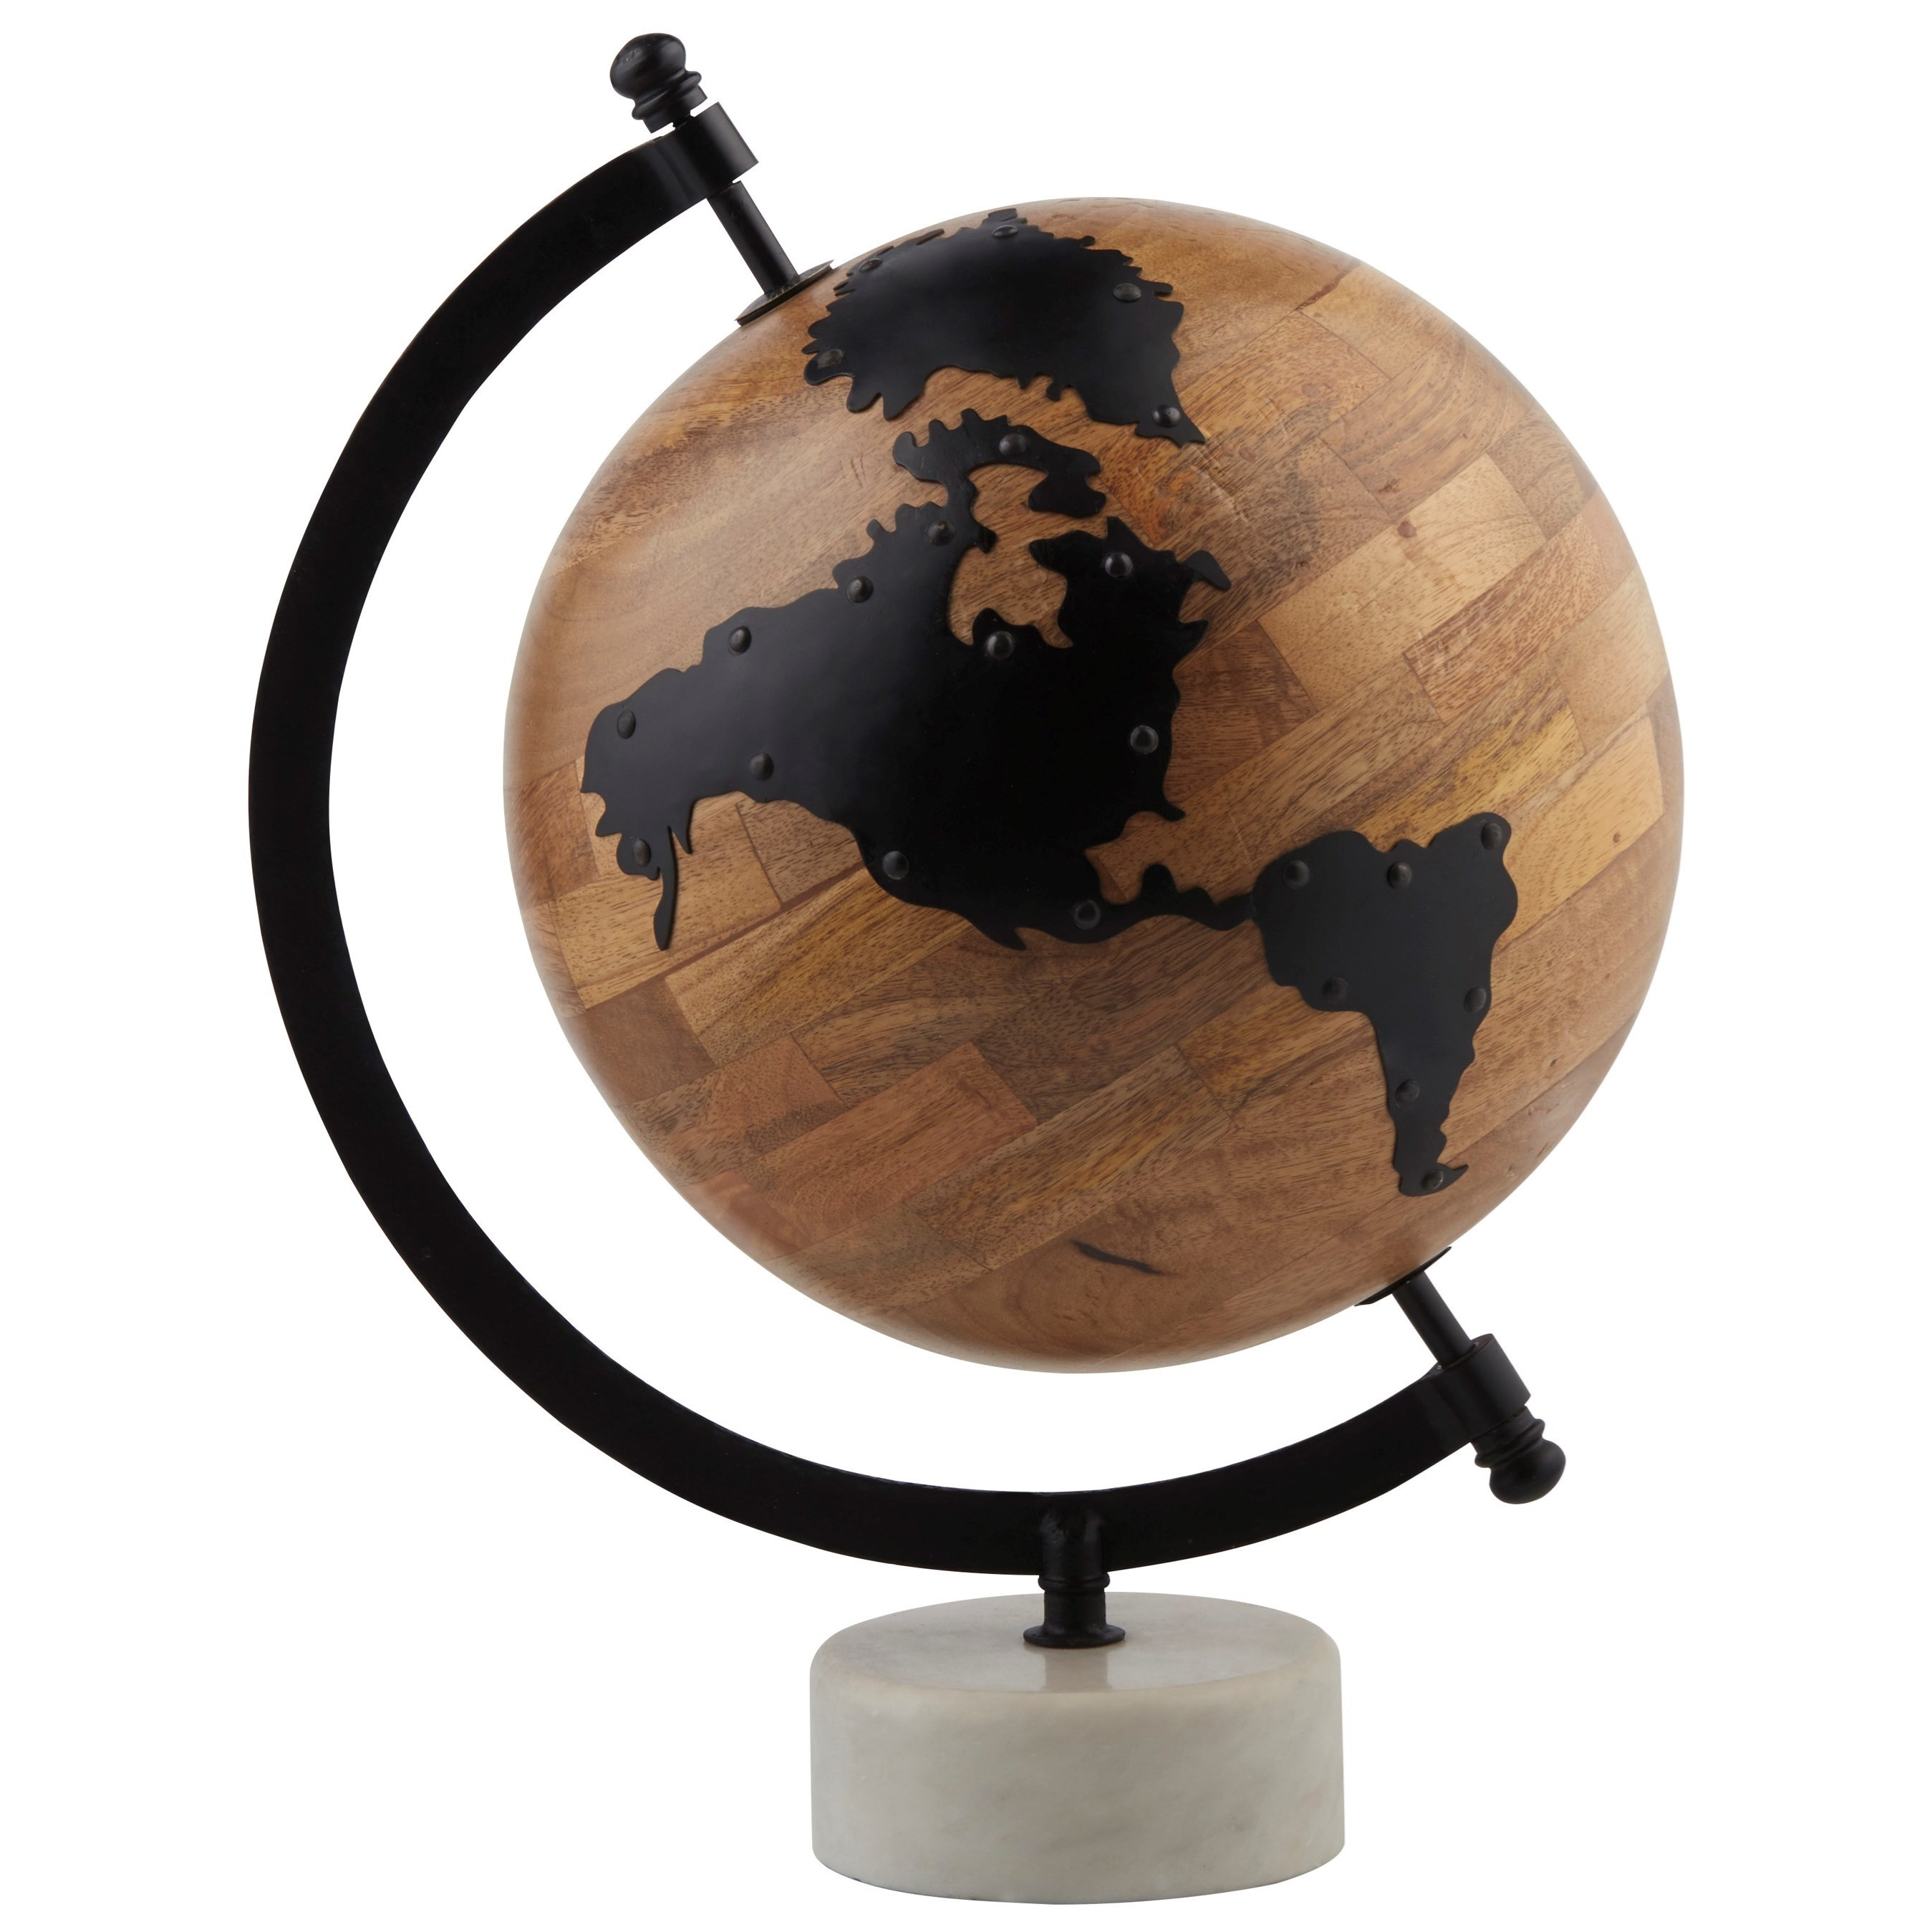 Accents Alameda Natural/Black Globe Sculpture by Signature Design by Ashley at Lynn's Furniture & Mattress